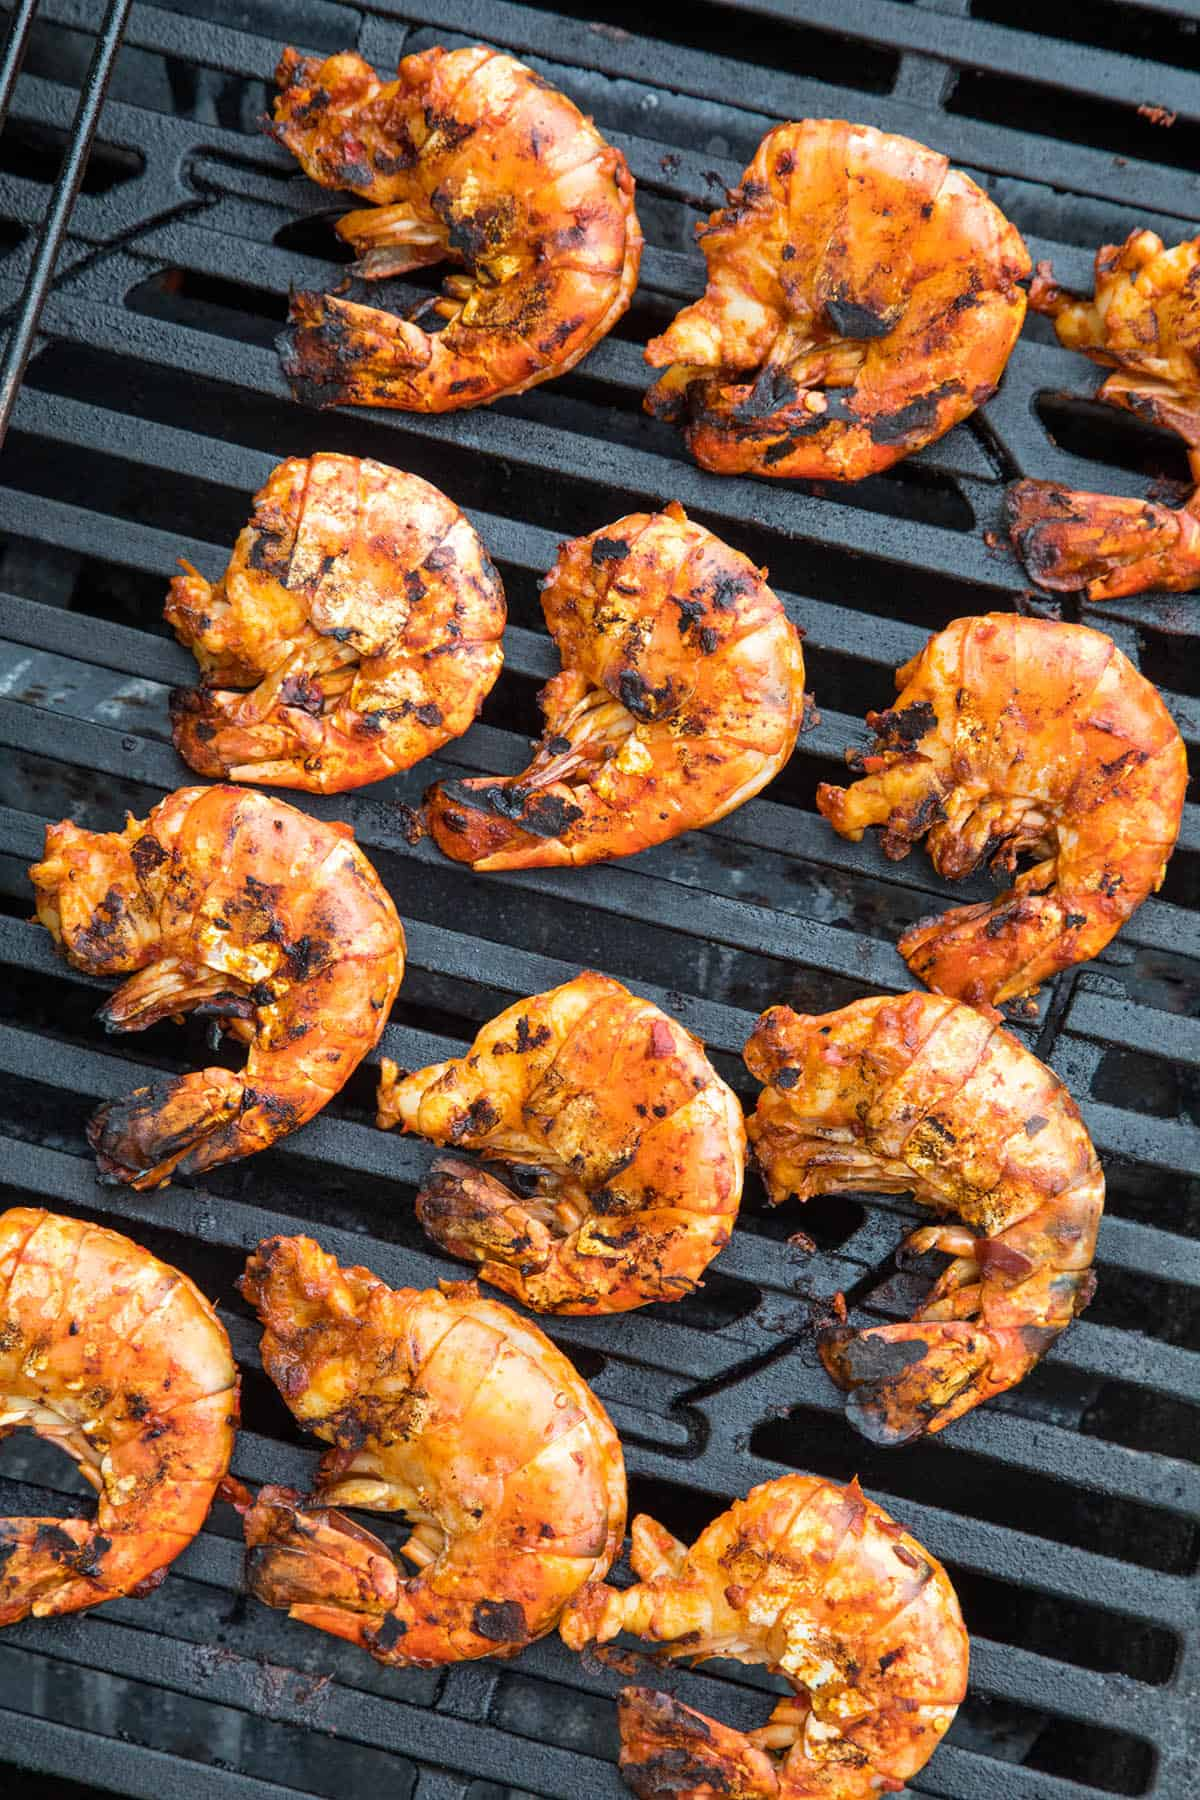 Colossal Grilled Shrimp on the Grill